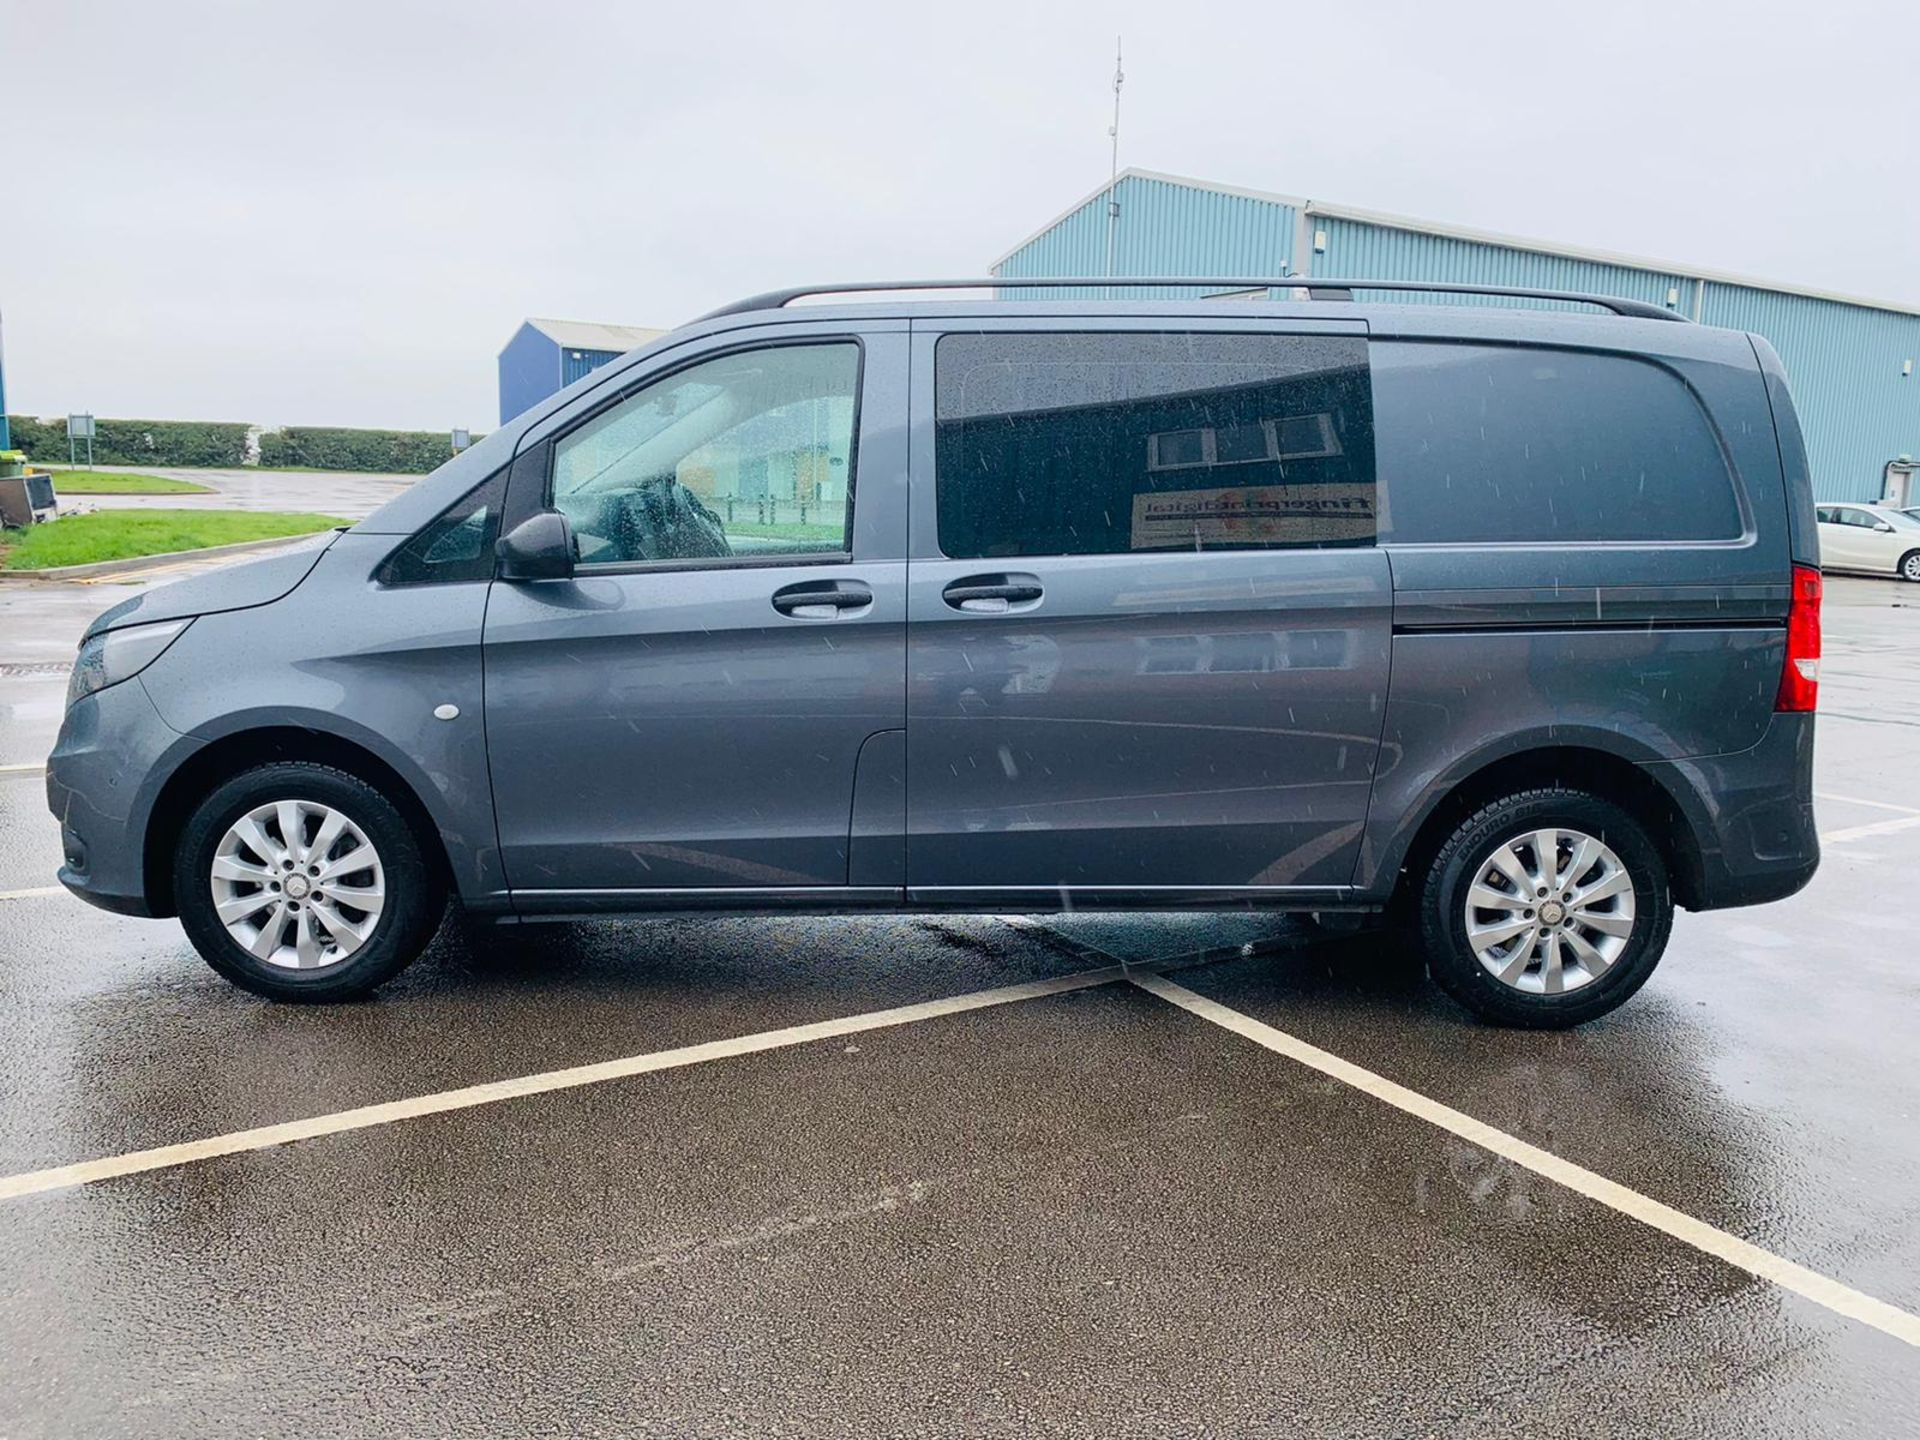 Mercedes Vito 114 Bluetec Dualiner/Crew Van - Auto - Air Con - 2018 Model- 1 Owner From New - Image 6 of 30